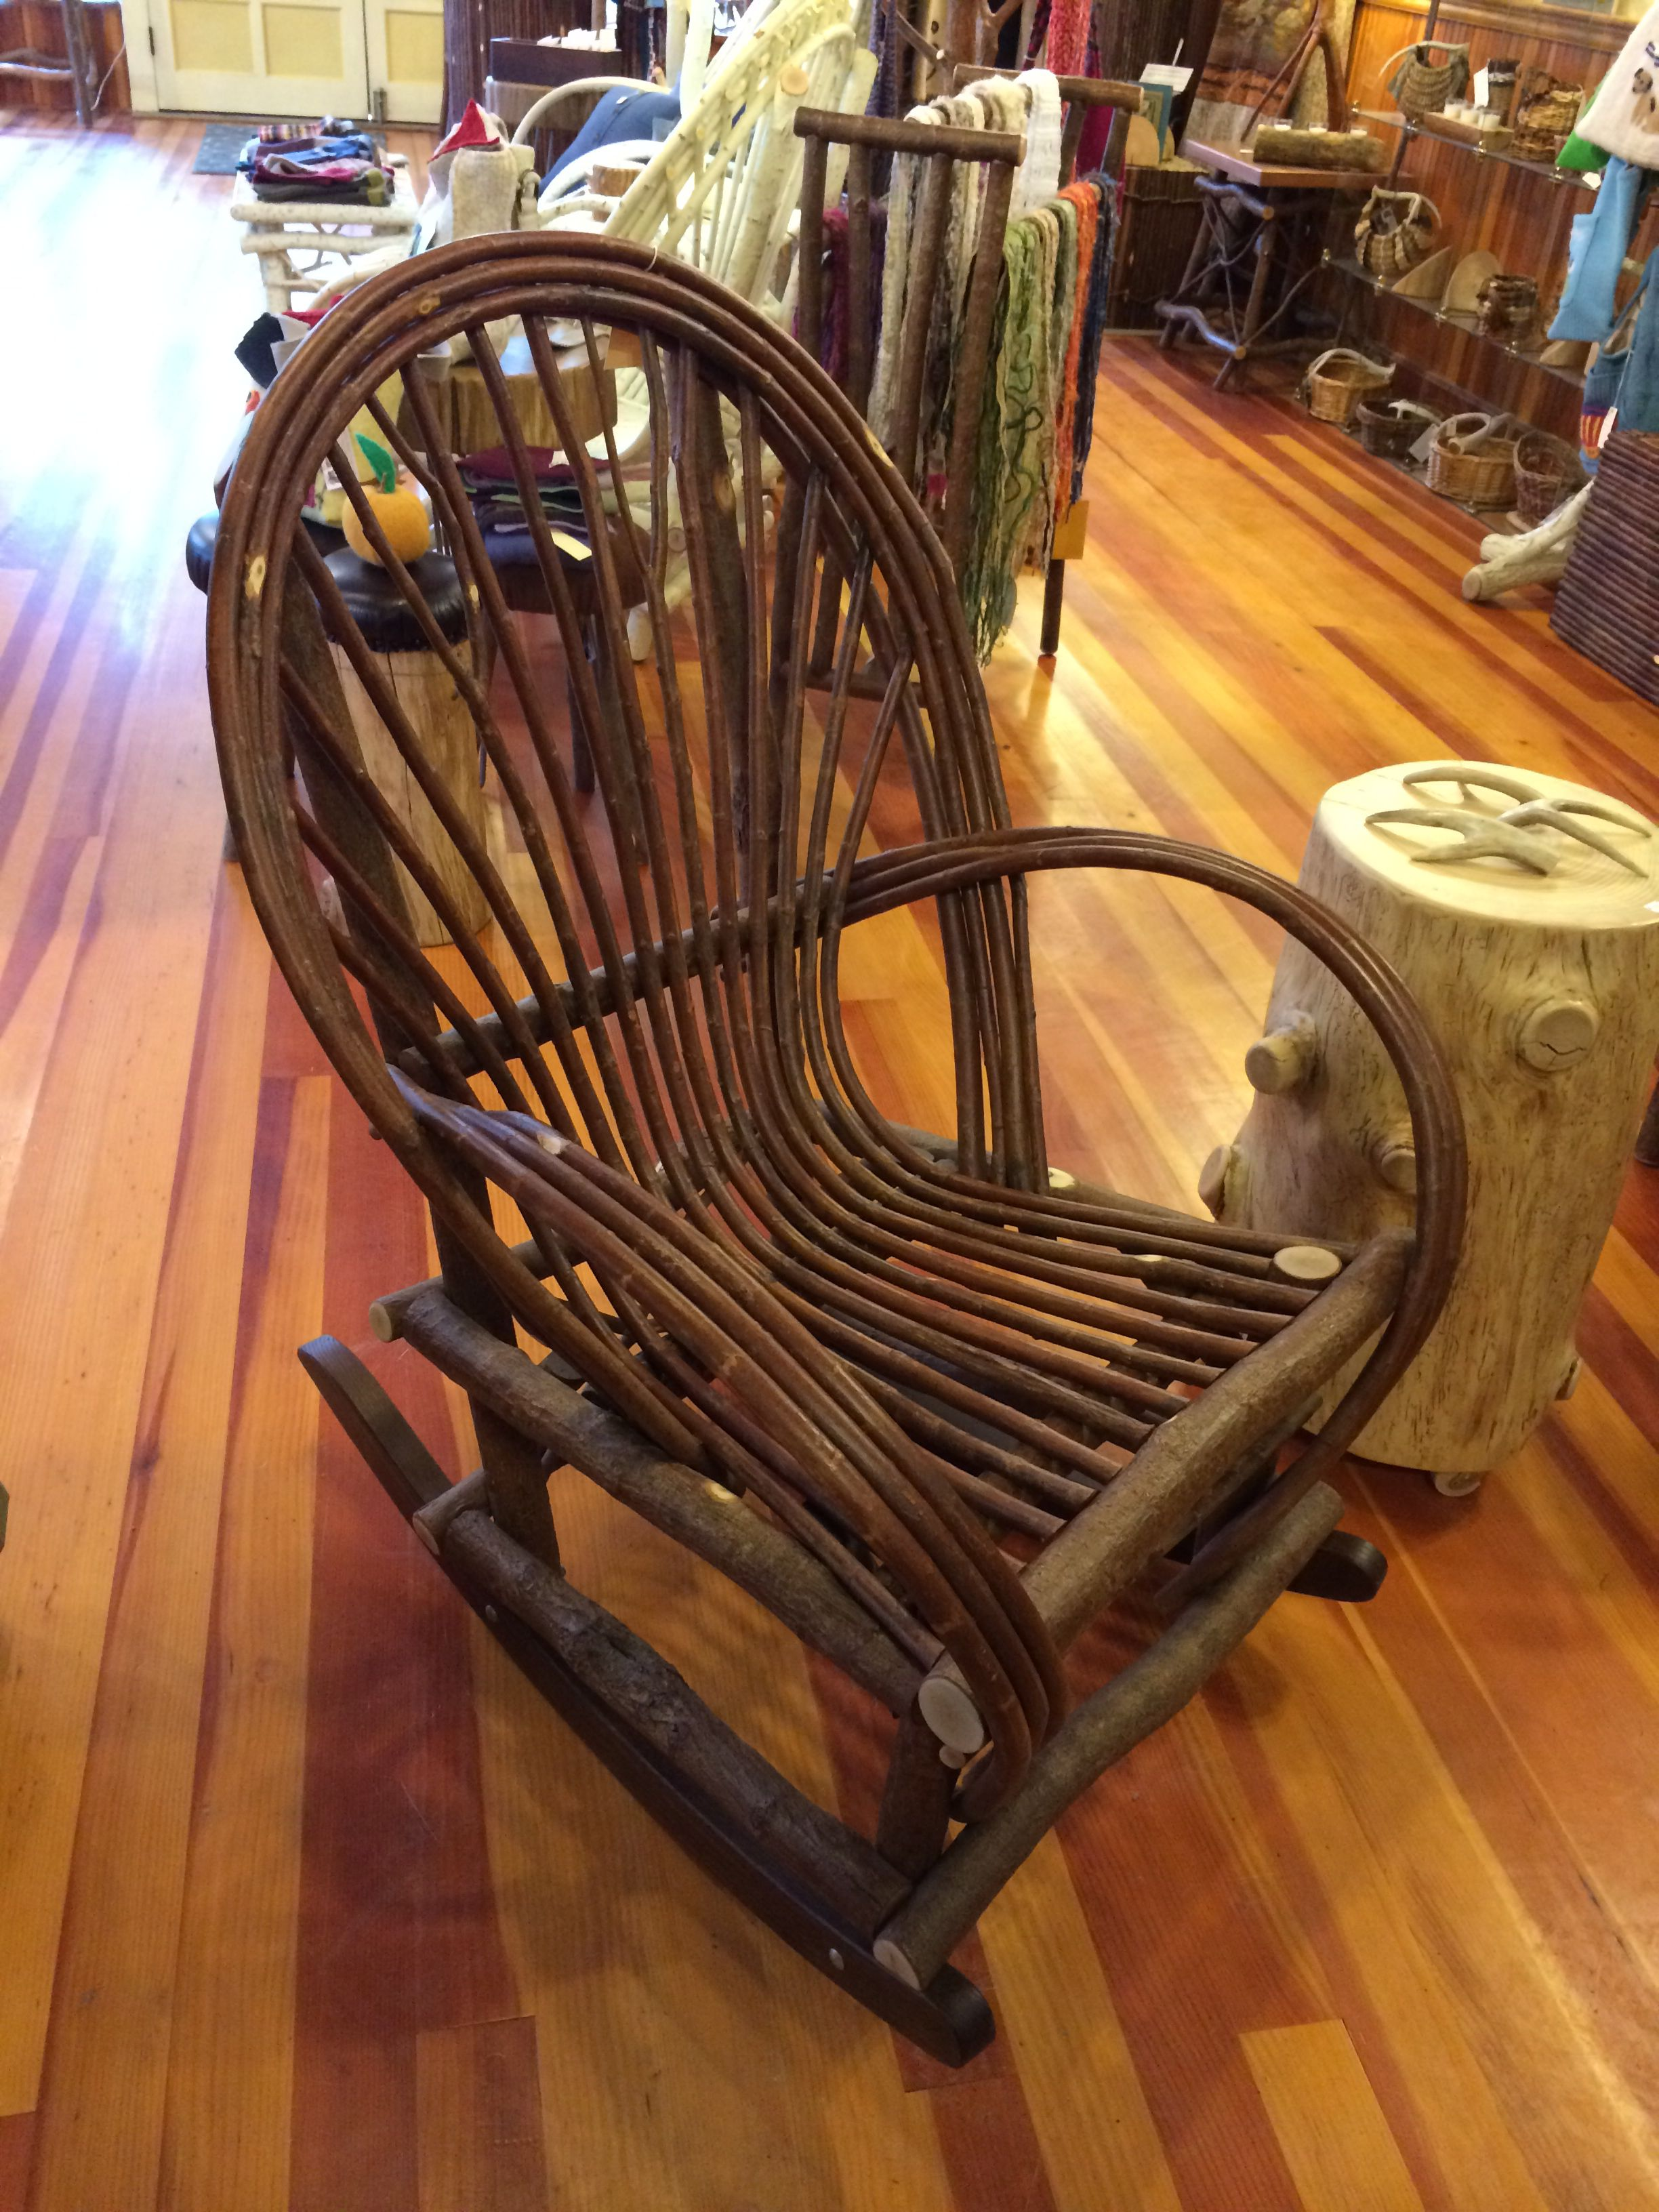 Absolutely beautiful homemade rocking chair. Gonna come back here one day when i have that